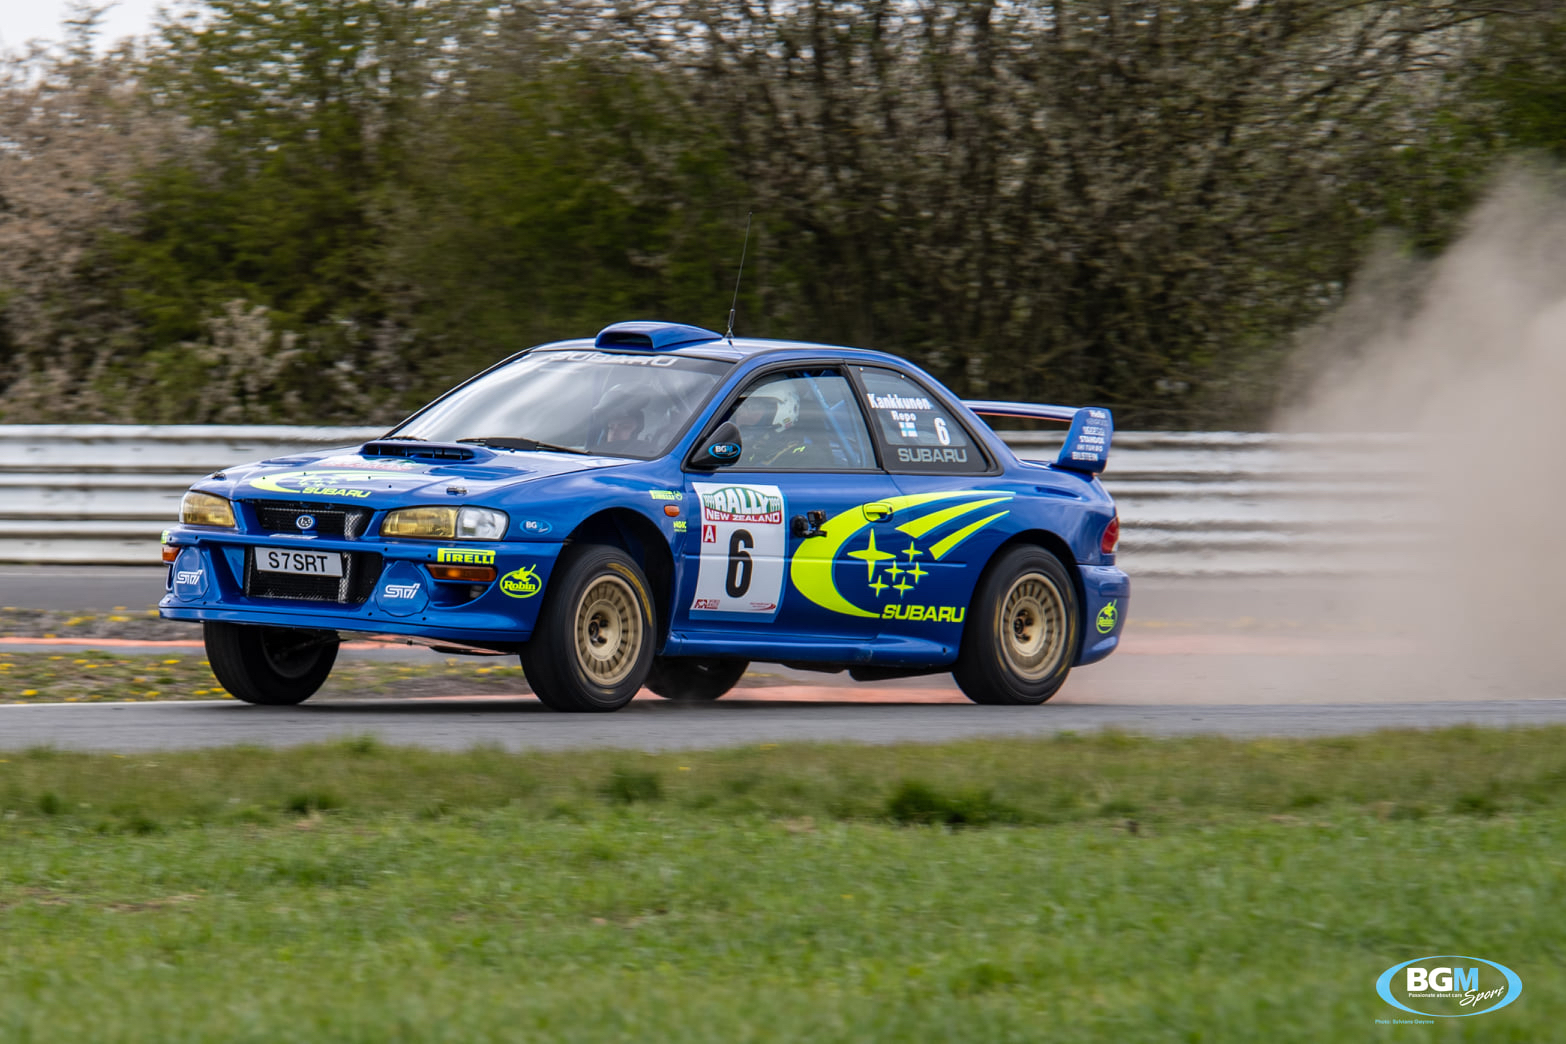 BGMSPORT PROVIDES THE BEST OF THE BEST AT RALLYDAY